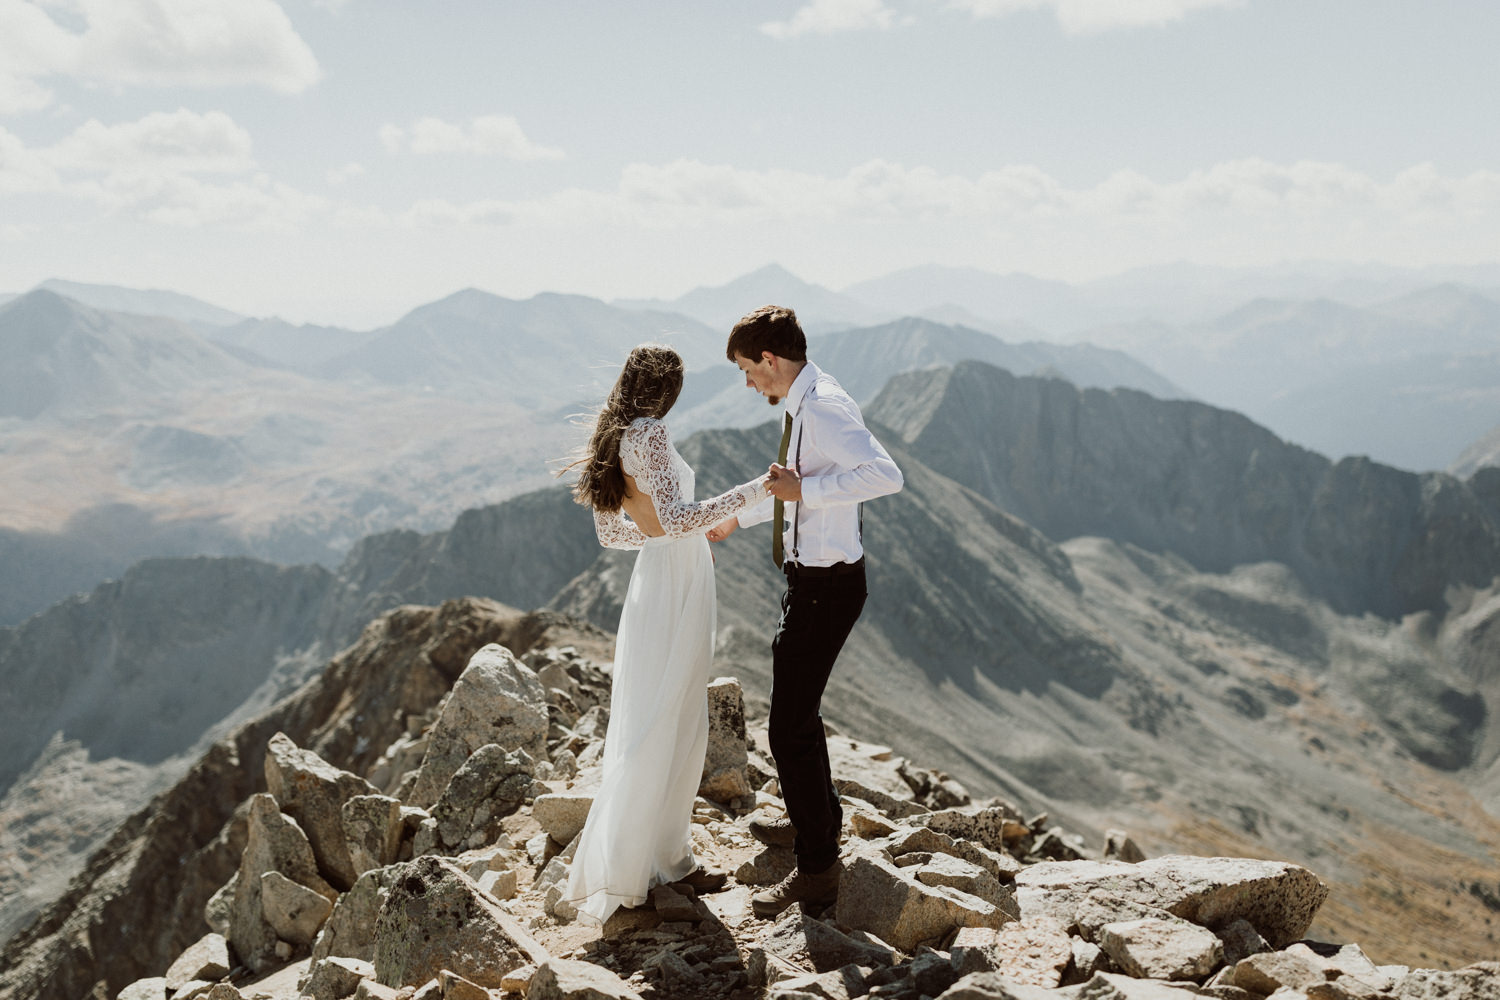 fourteener-adventure-wedding-photographer-95.jpg